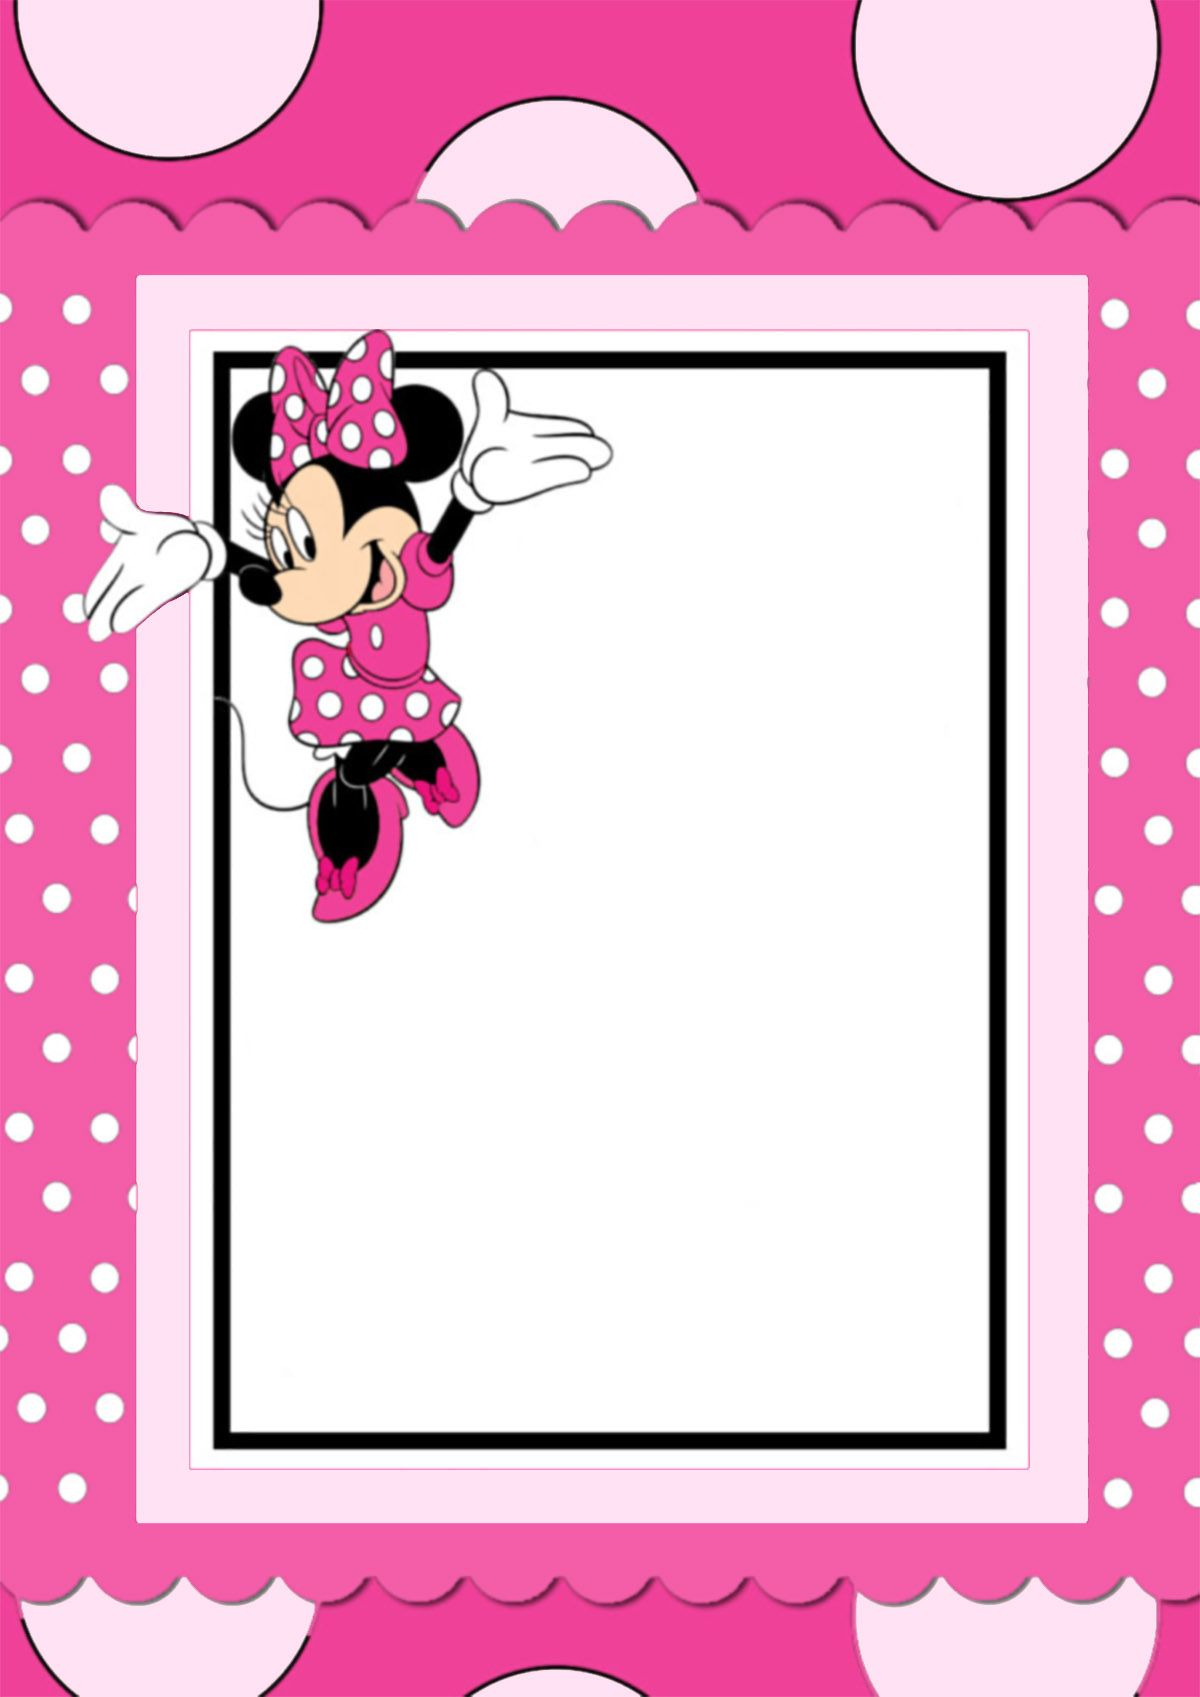 Free Printable Minnie Mouse Invitation Card | Crafts With Regard To Minnie Mouse Card Templates